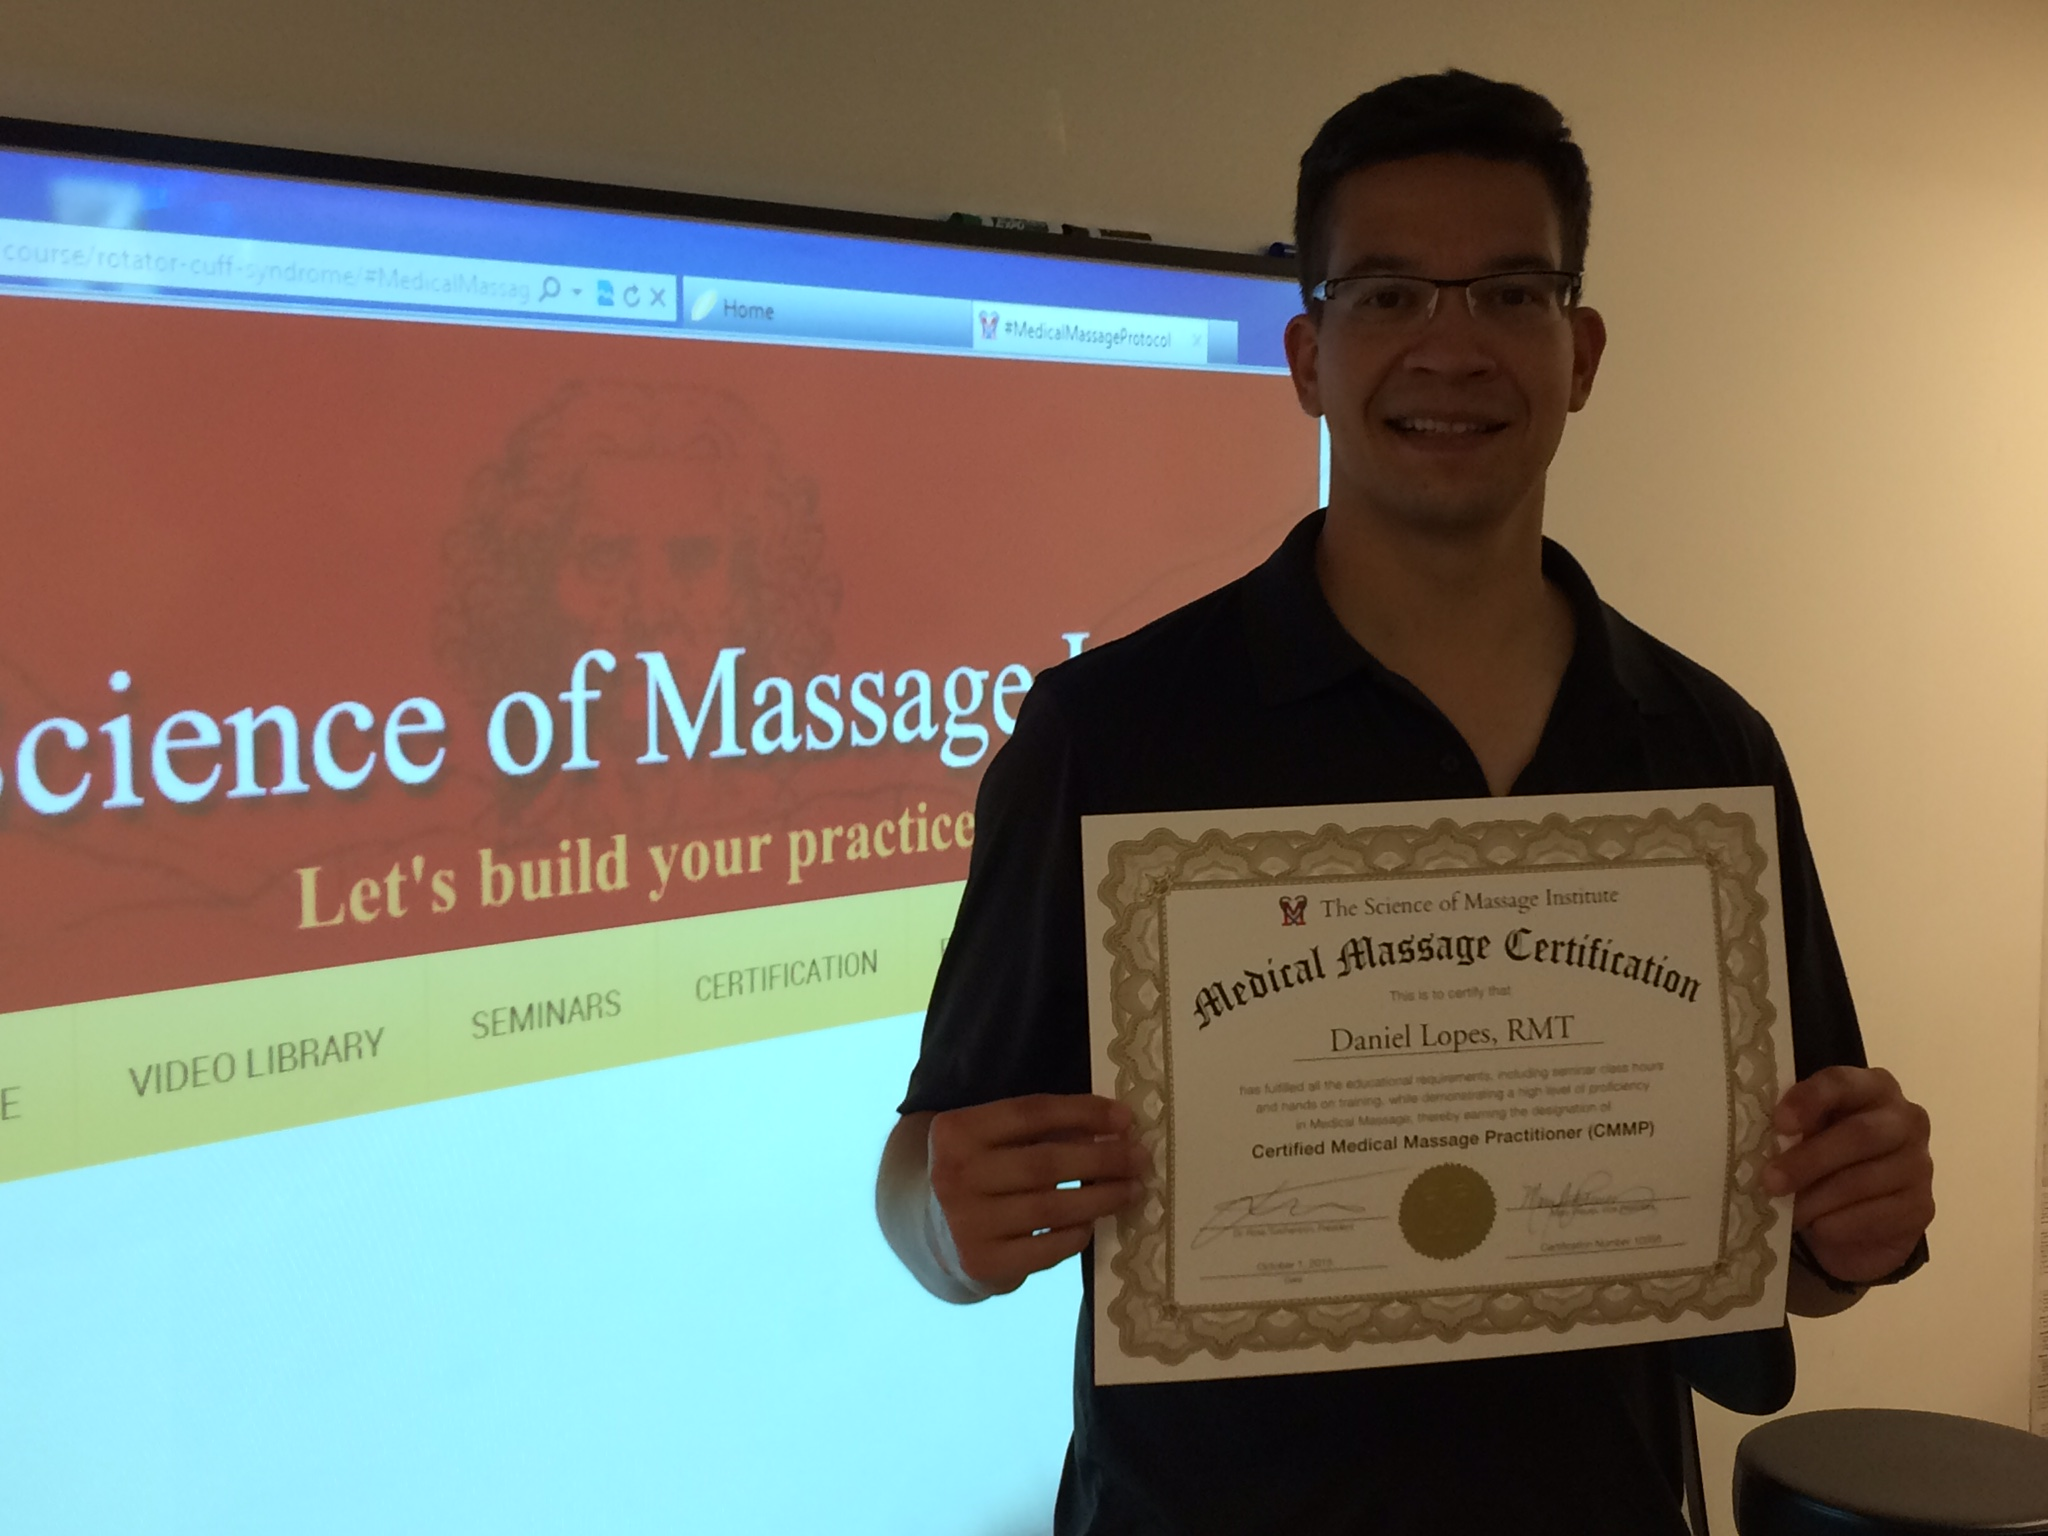 Public Massage Clinics | Student Massage Training Clinics - Massage Therapy  Students